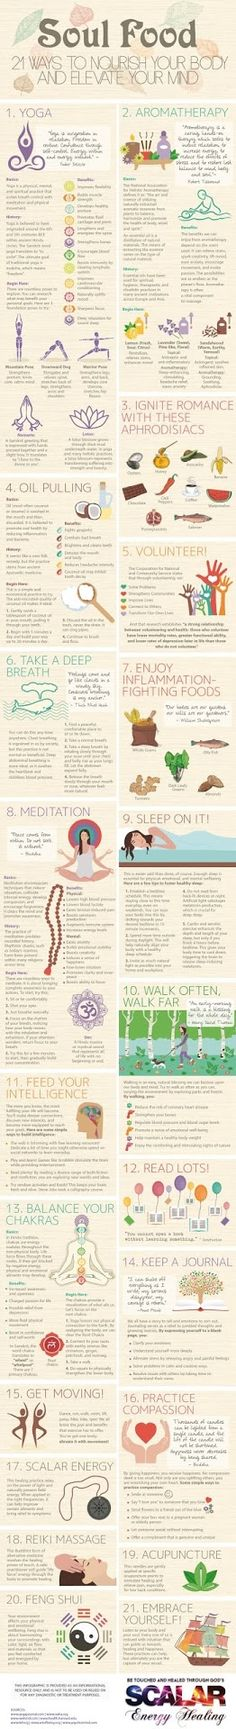 The Mind-Body Connection and Energy Healing: Soul Food - 21 Ways to Nourish Your Body and Elevate Your Mind [Infographic]